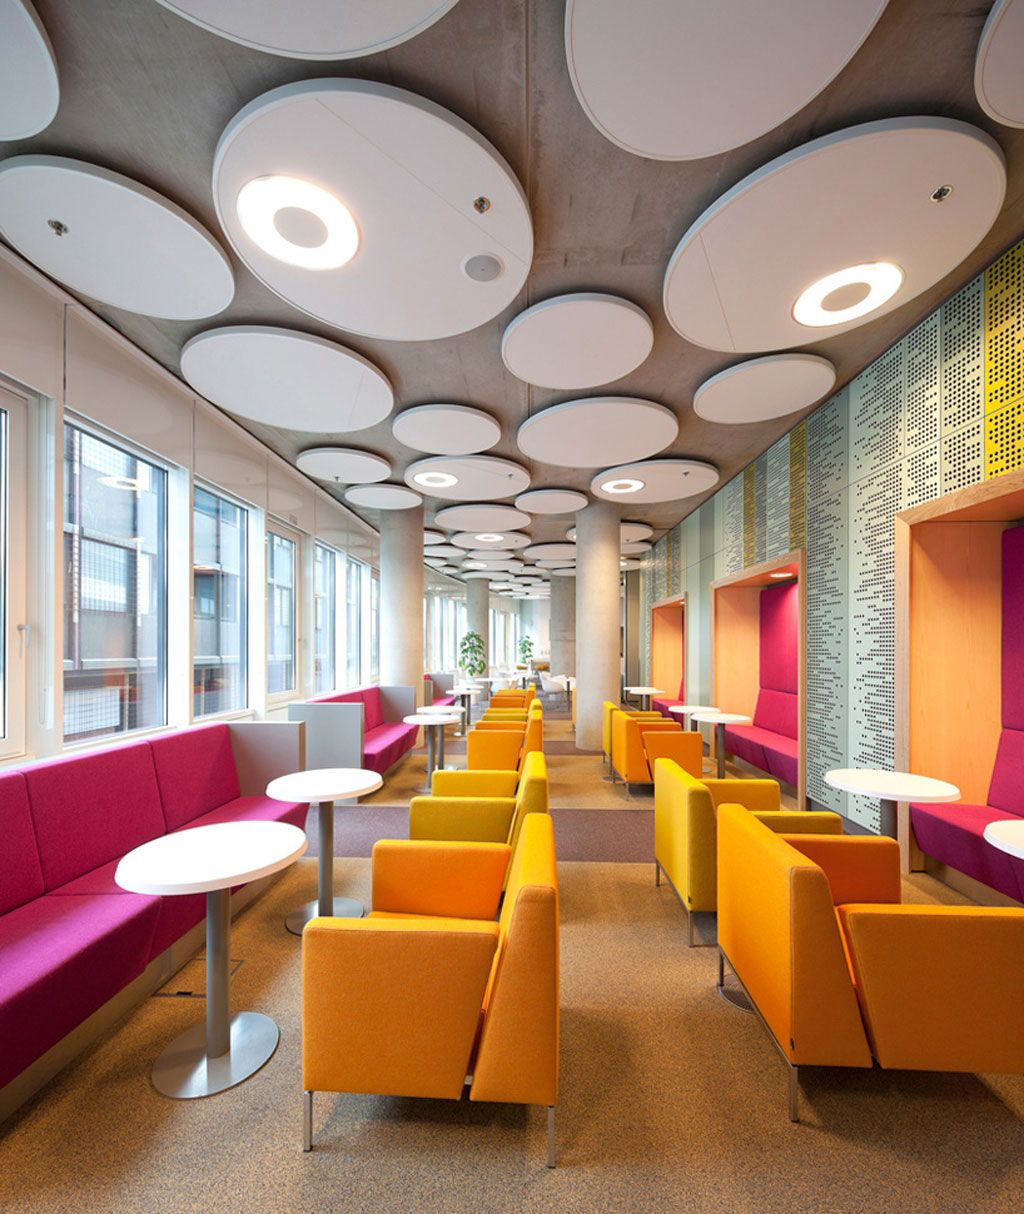 Furniture cool office sofa design ideas orange and pink cafe interior design ideas with chic seating and round dining table also decorative ceiling